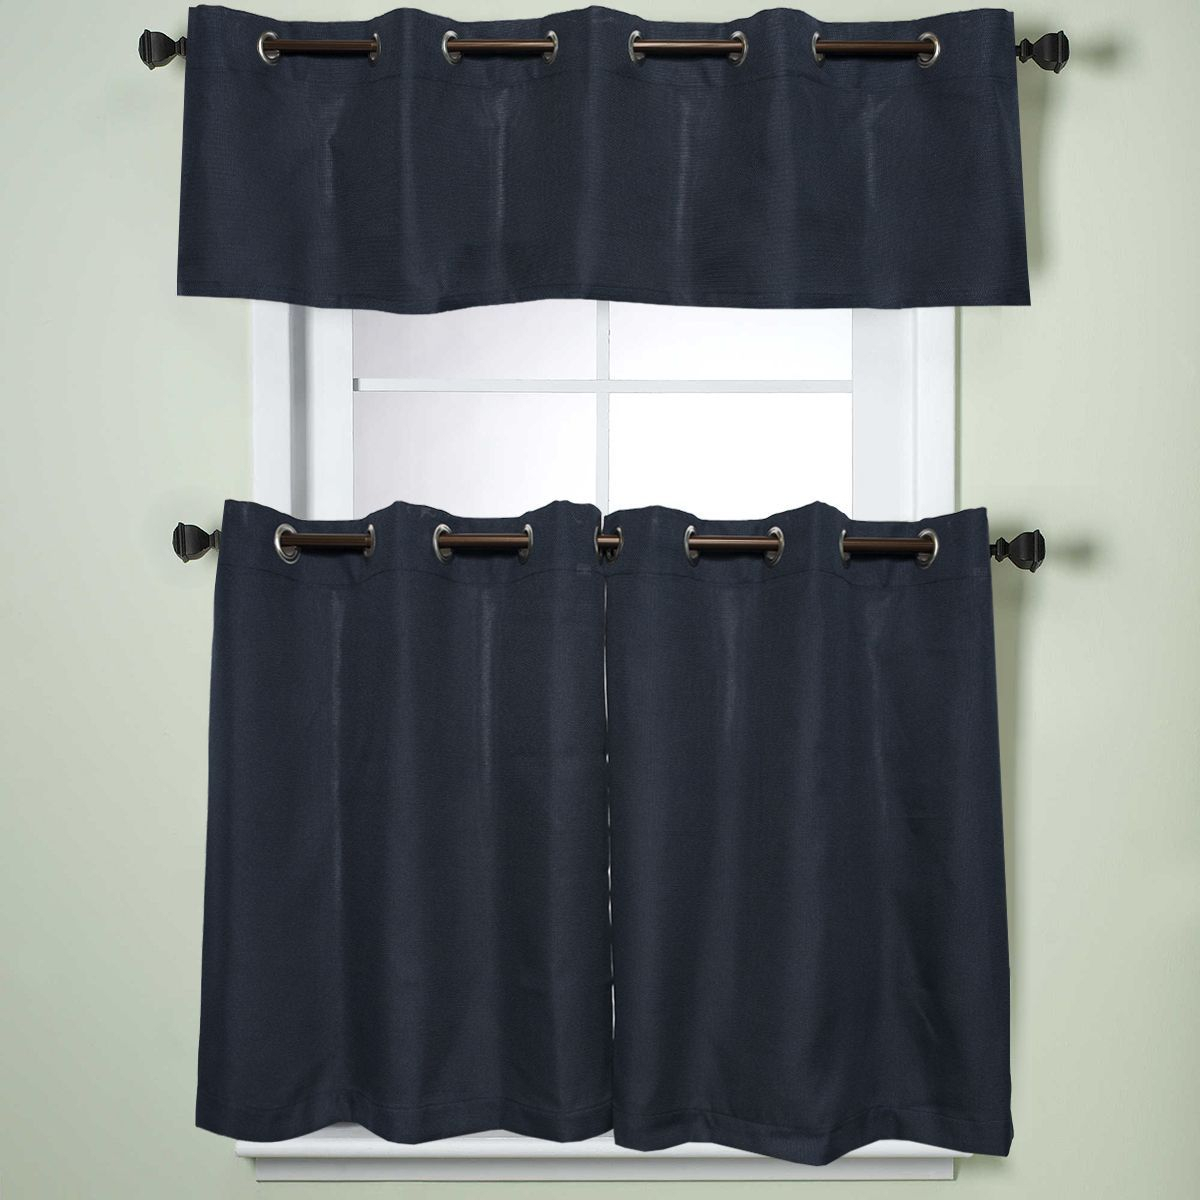 Modern Subtle Texture Solid Navy Kitchen Curtain Parts With With Regard To Modern Subtle Texture Solid White Kitchen Curtain Parts With Grommets Tier And Valance Options (View 3 of 20)